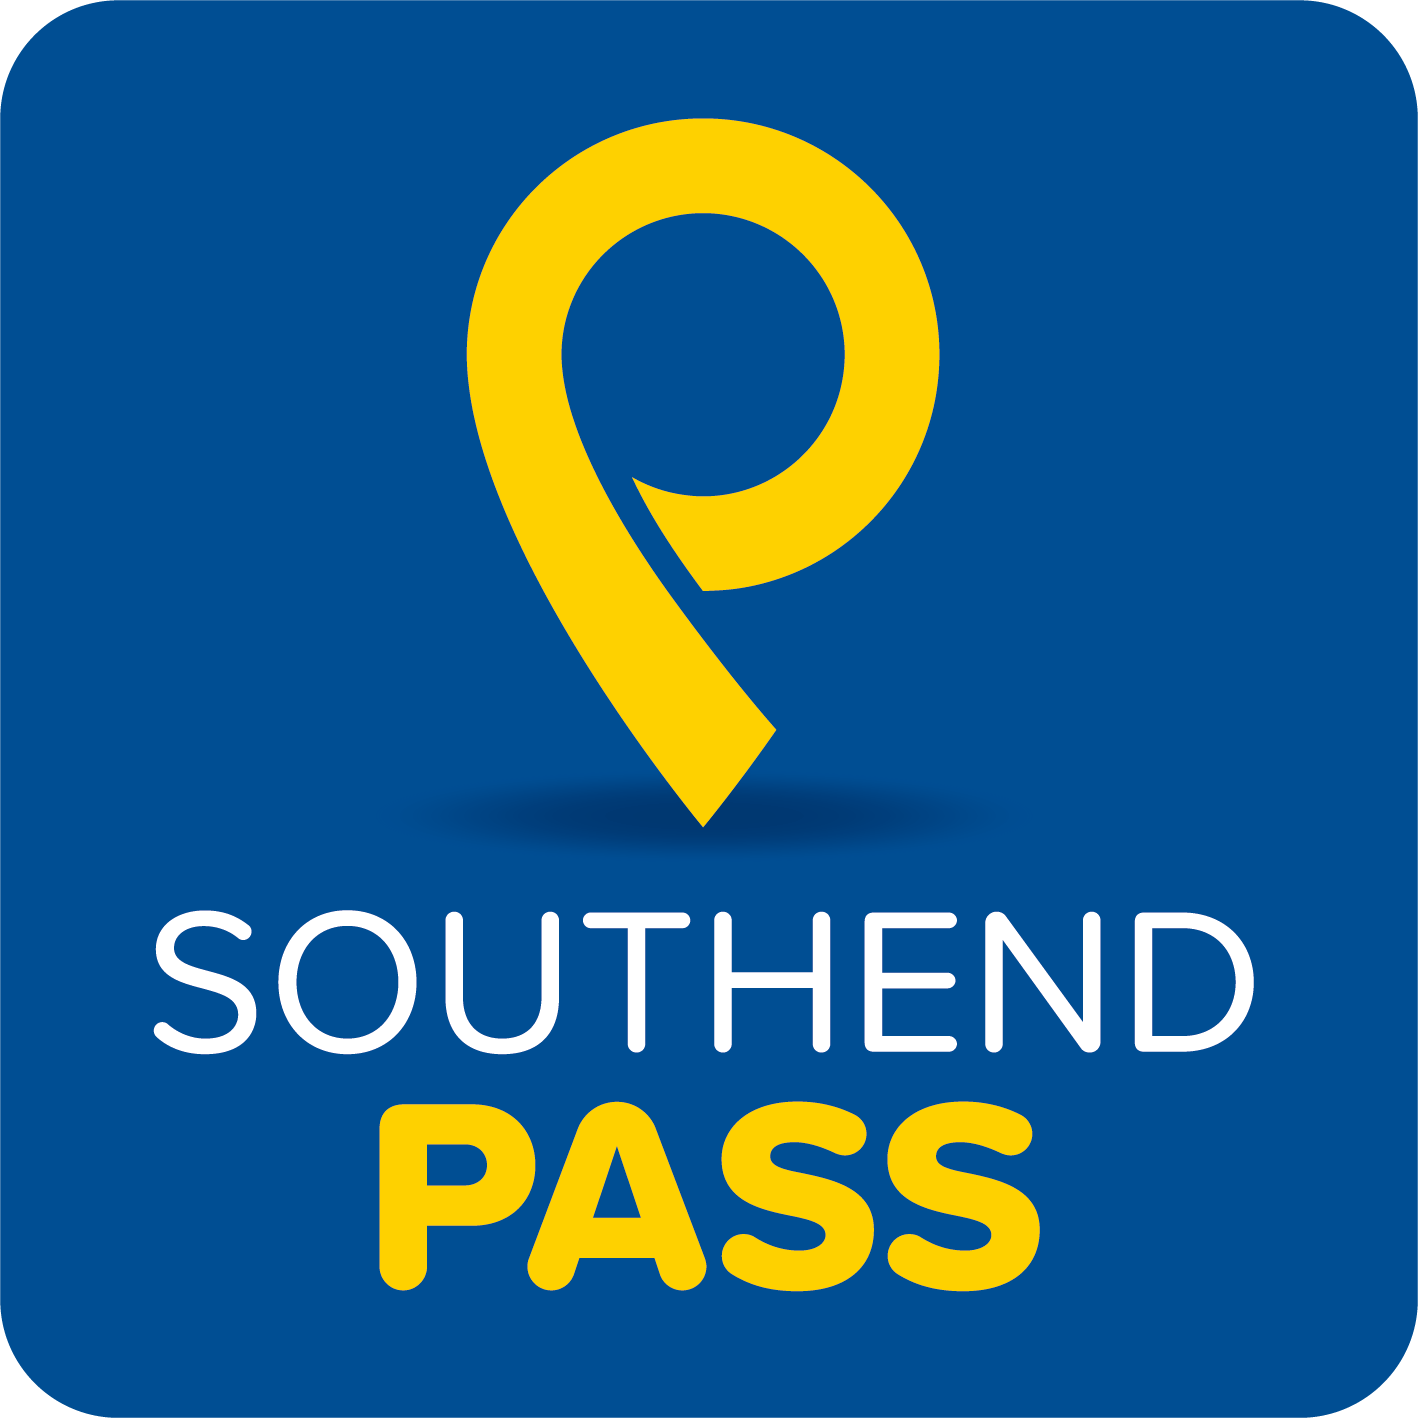 Southend Pass logo